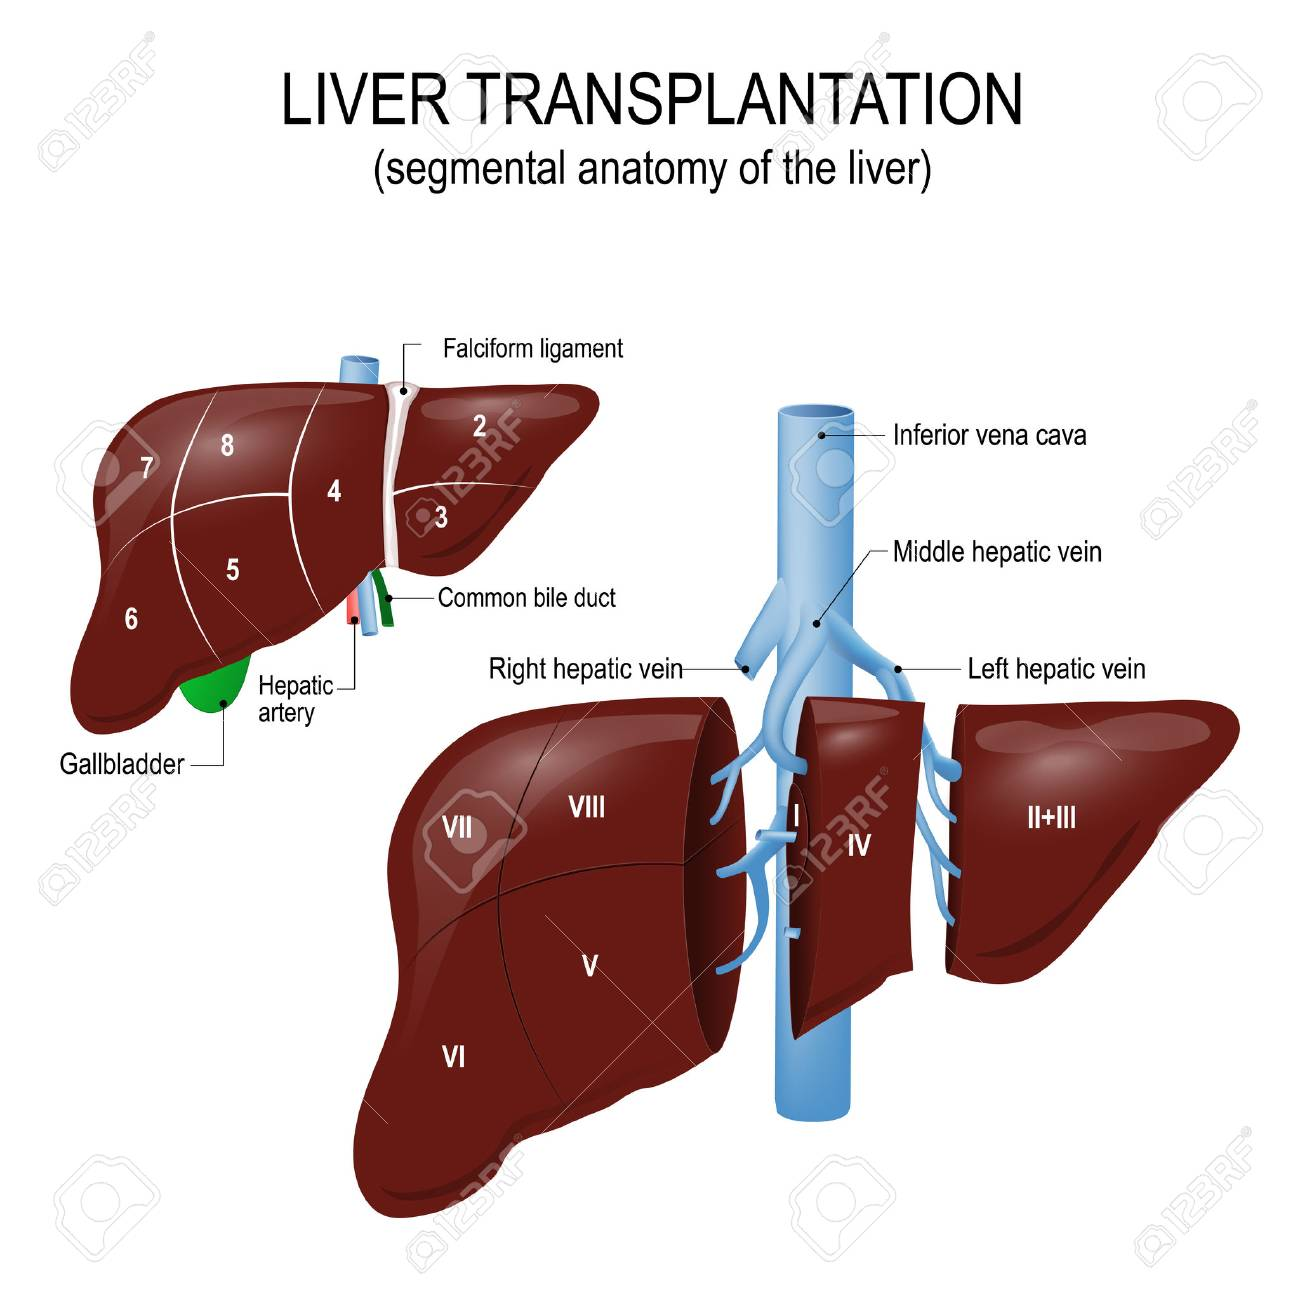 Liver Transplantation Segmental Anatomy Of The Liver And Blood